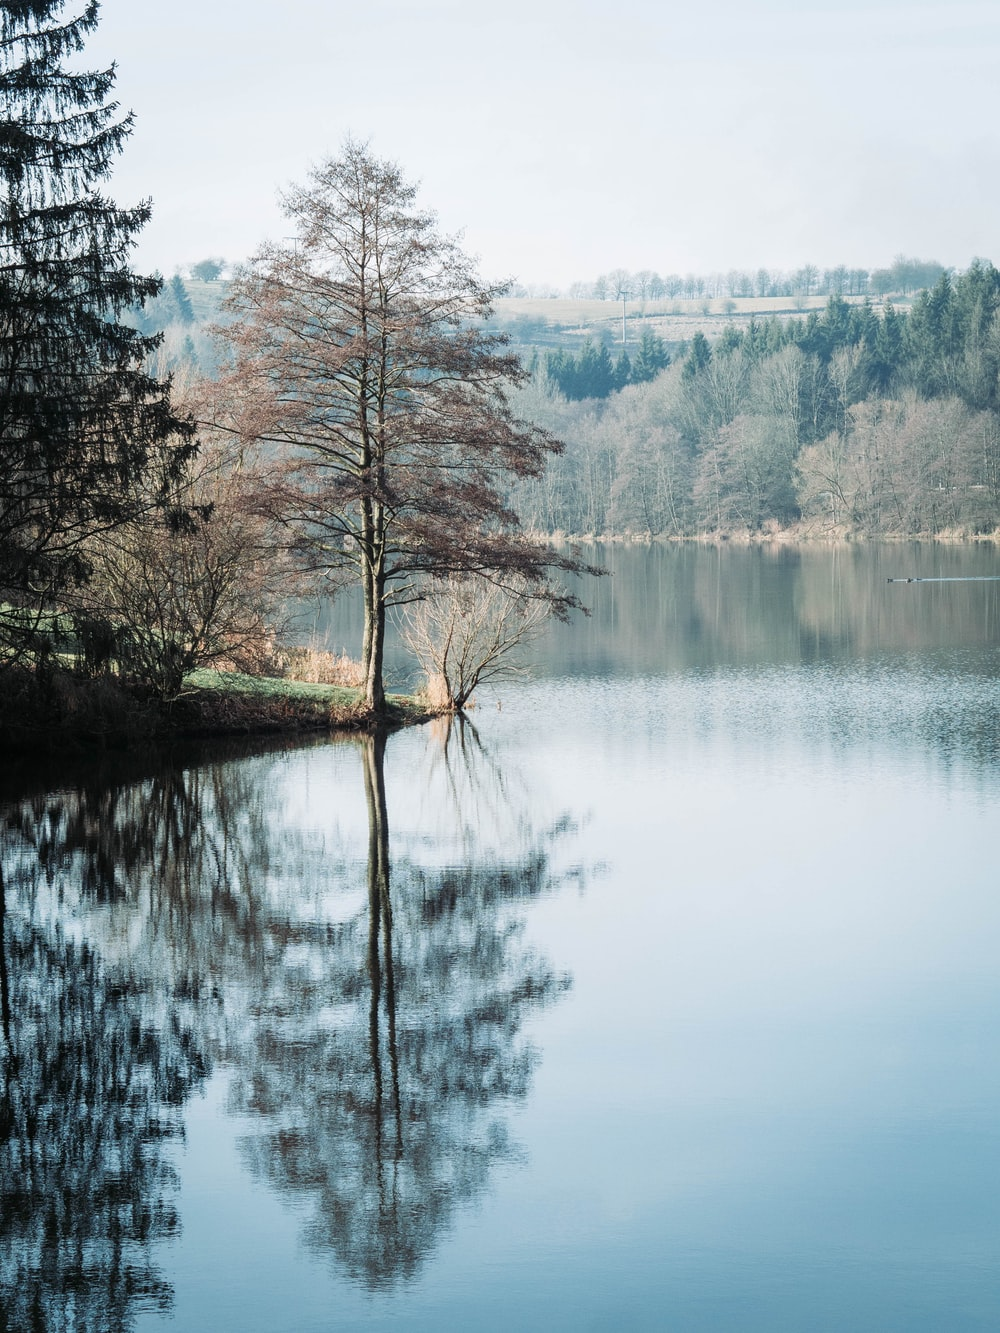 trees beside the lake view during daytime